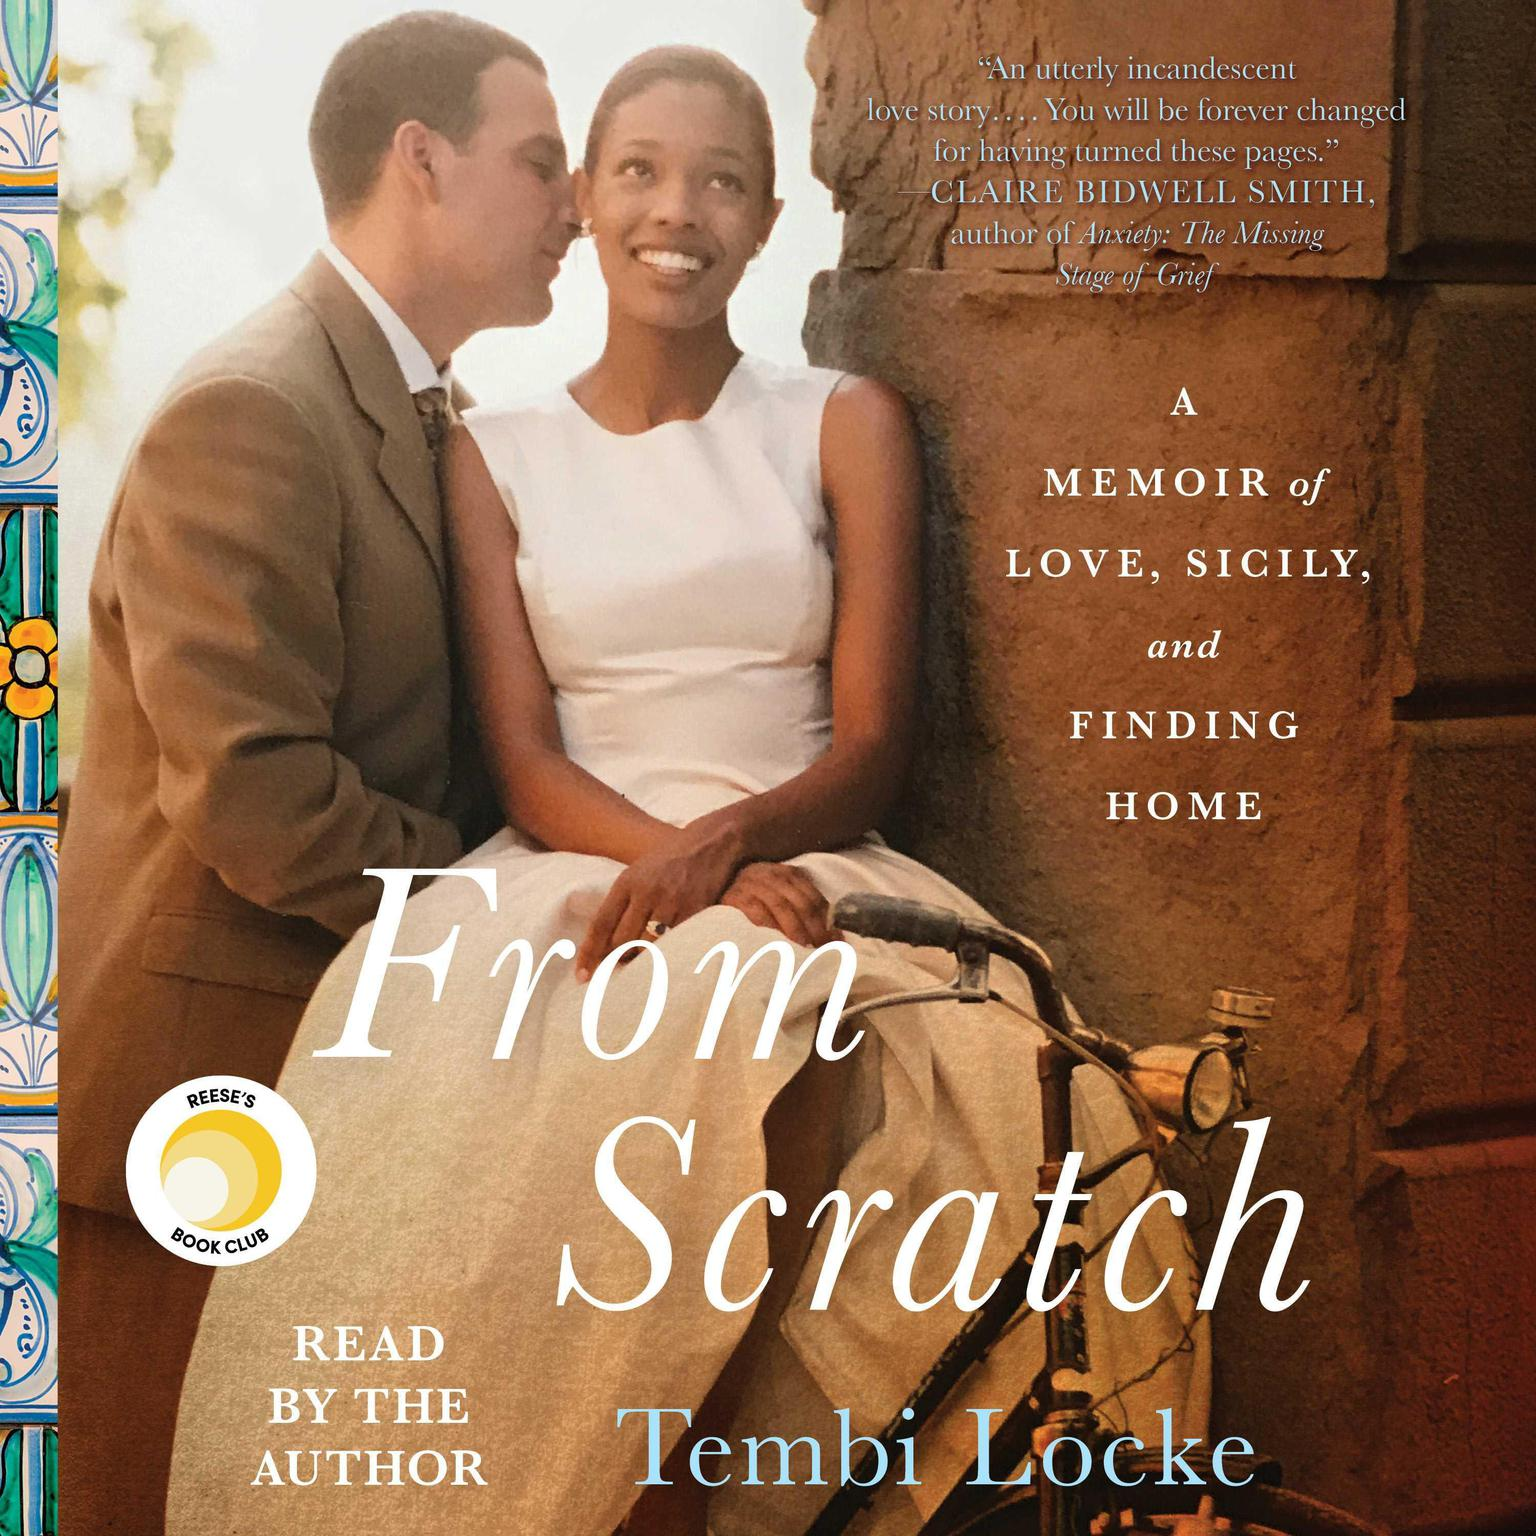 Printable From Scratch: A Memoir of Love, Sicily, and Finding Home Audiobook Cover Art